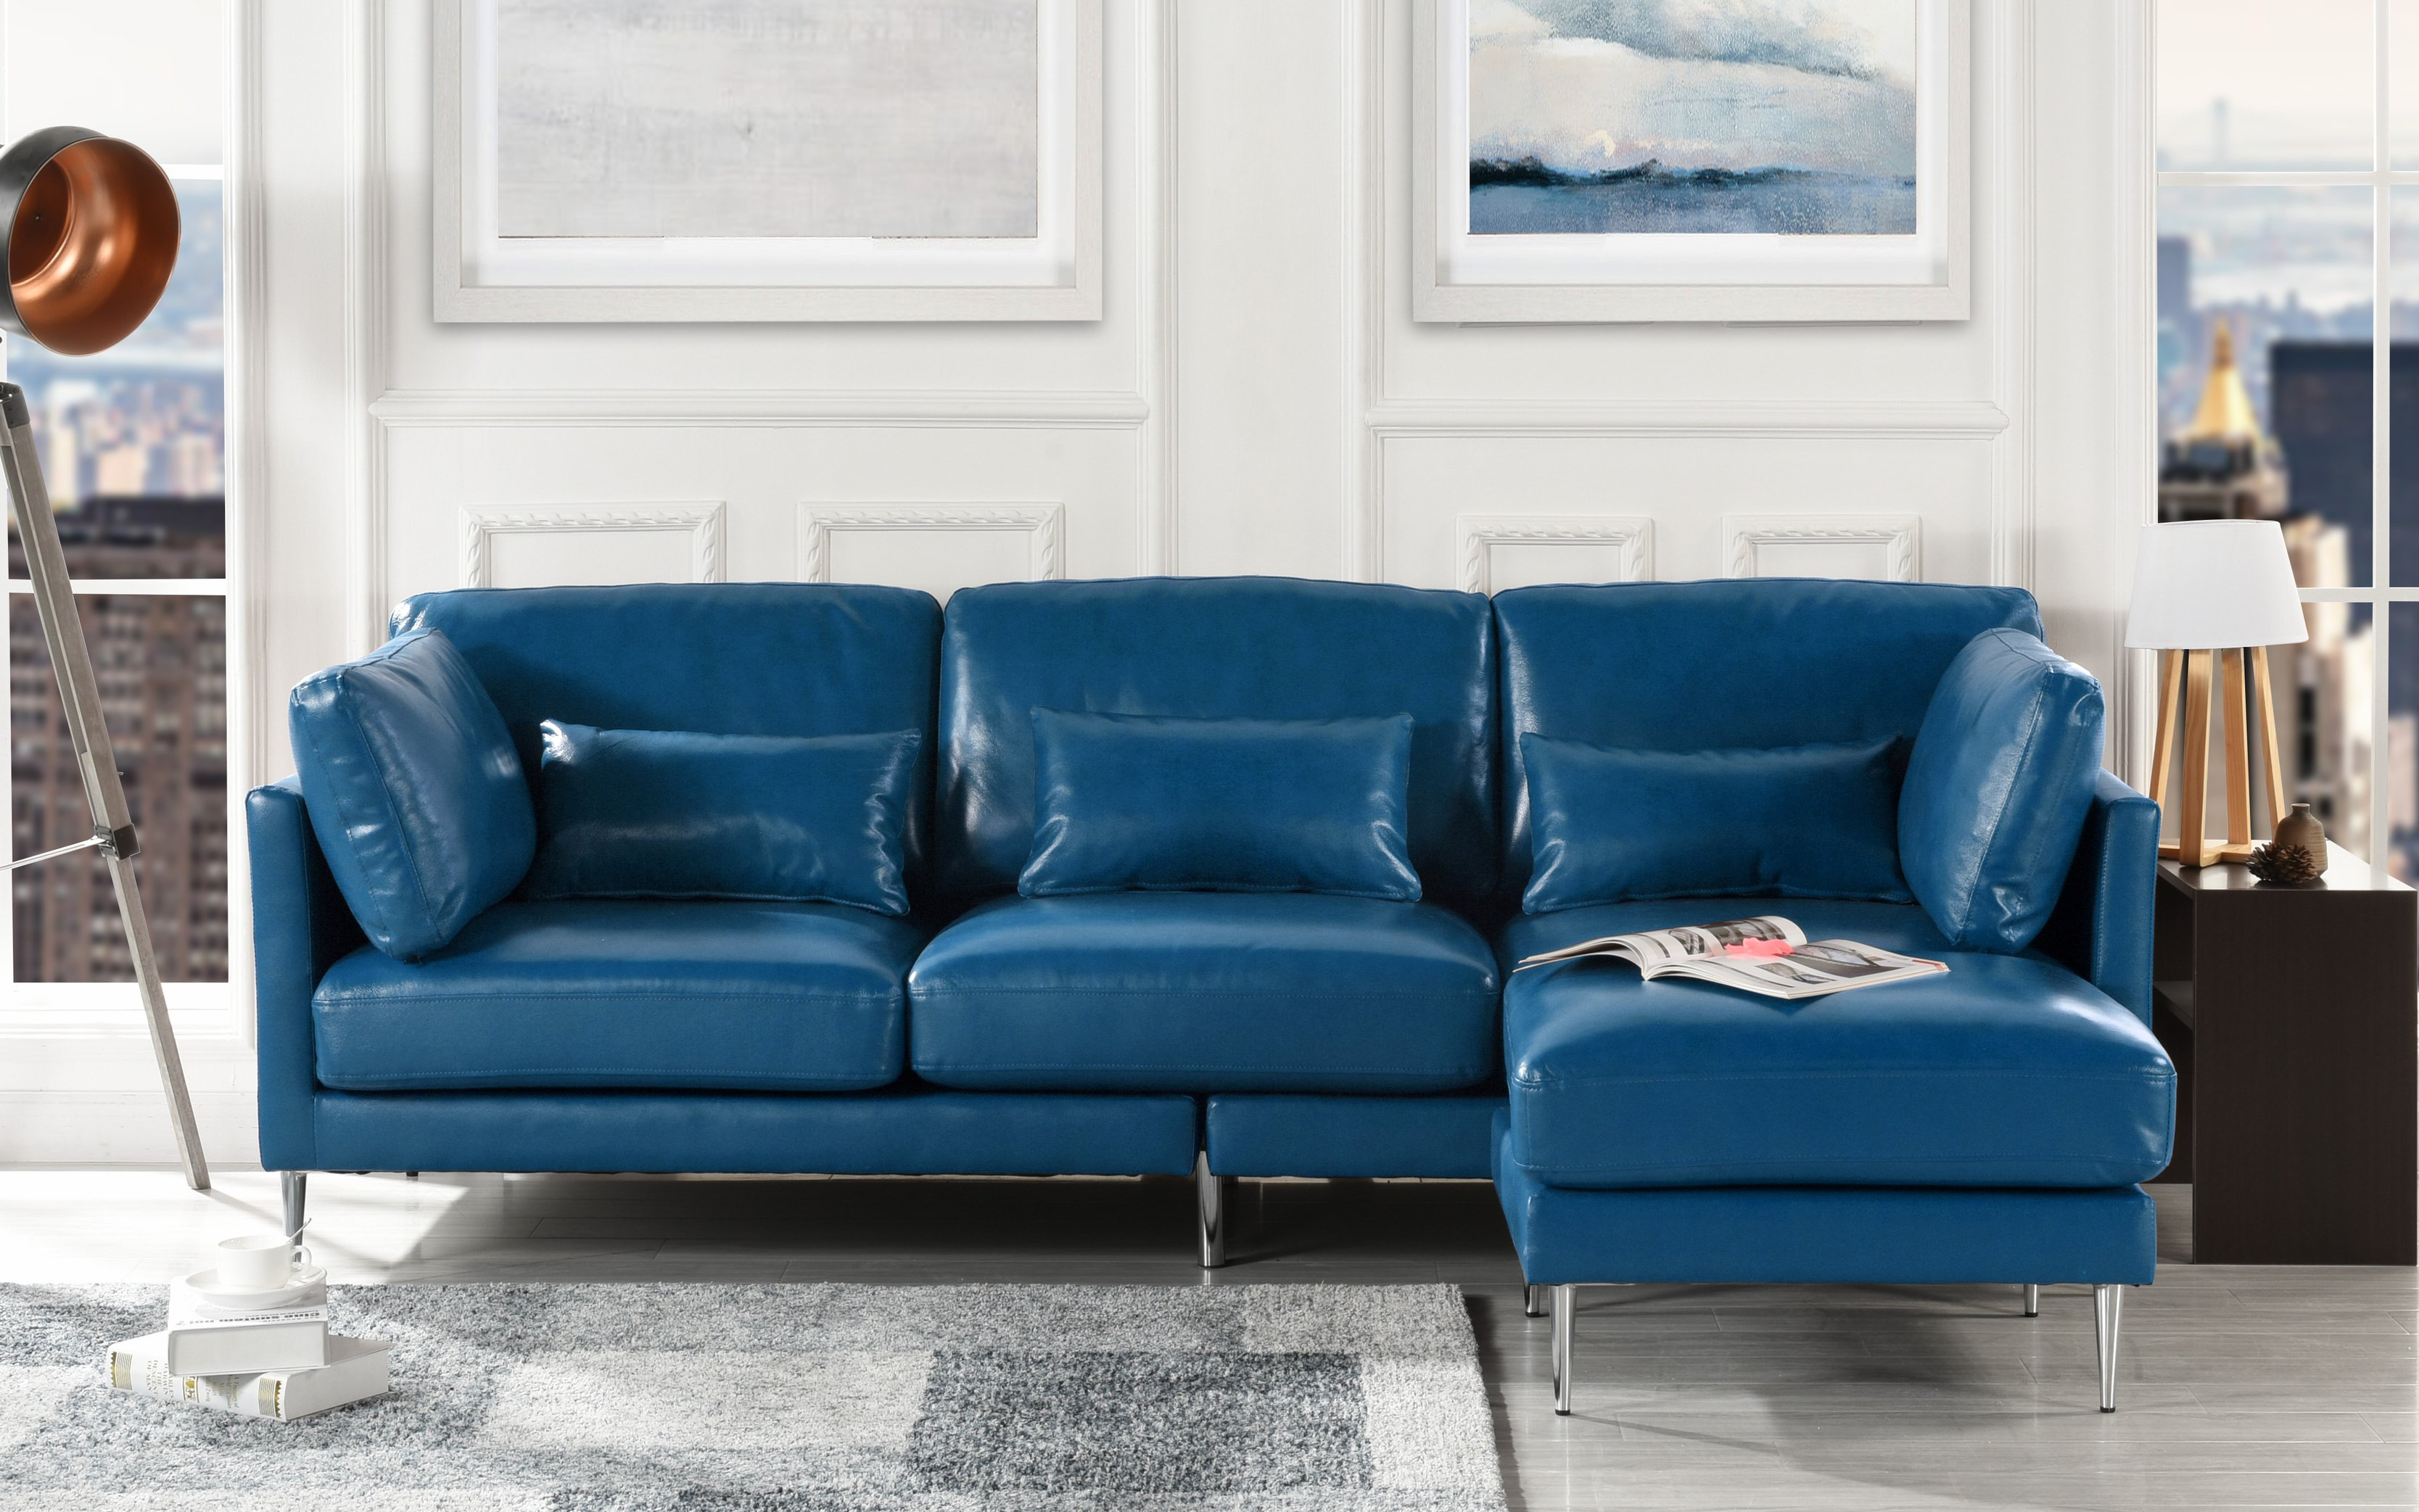 Details about Modern Leather Sectional Sofa, Contemporary PVC Leather L  Shape Couch Navy Blue